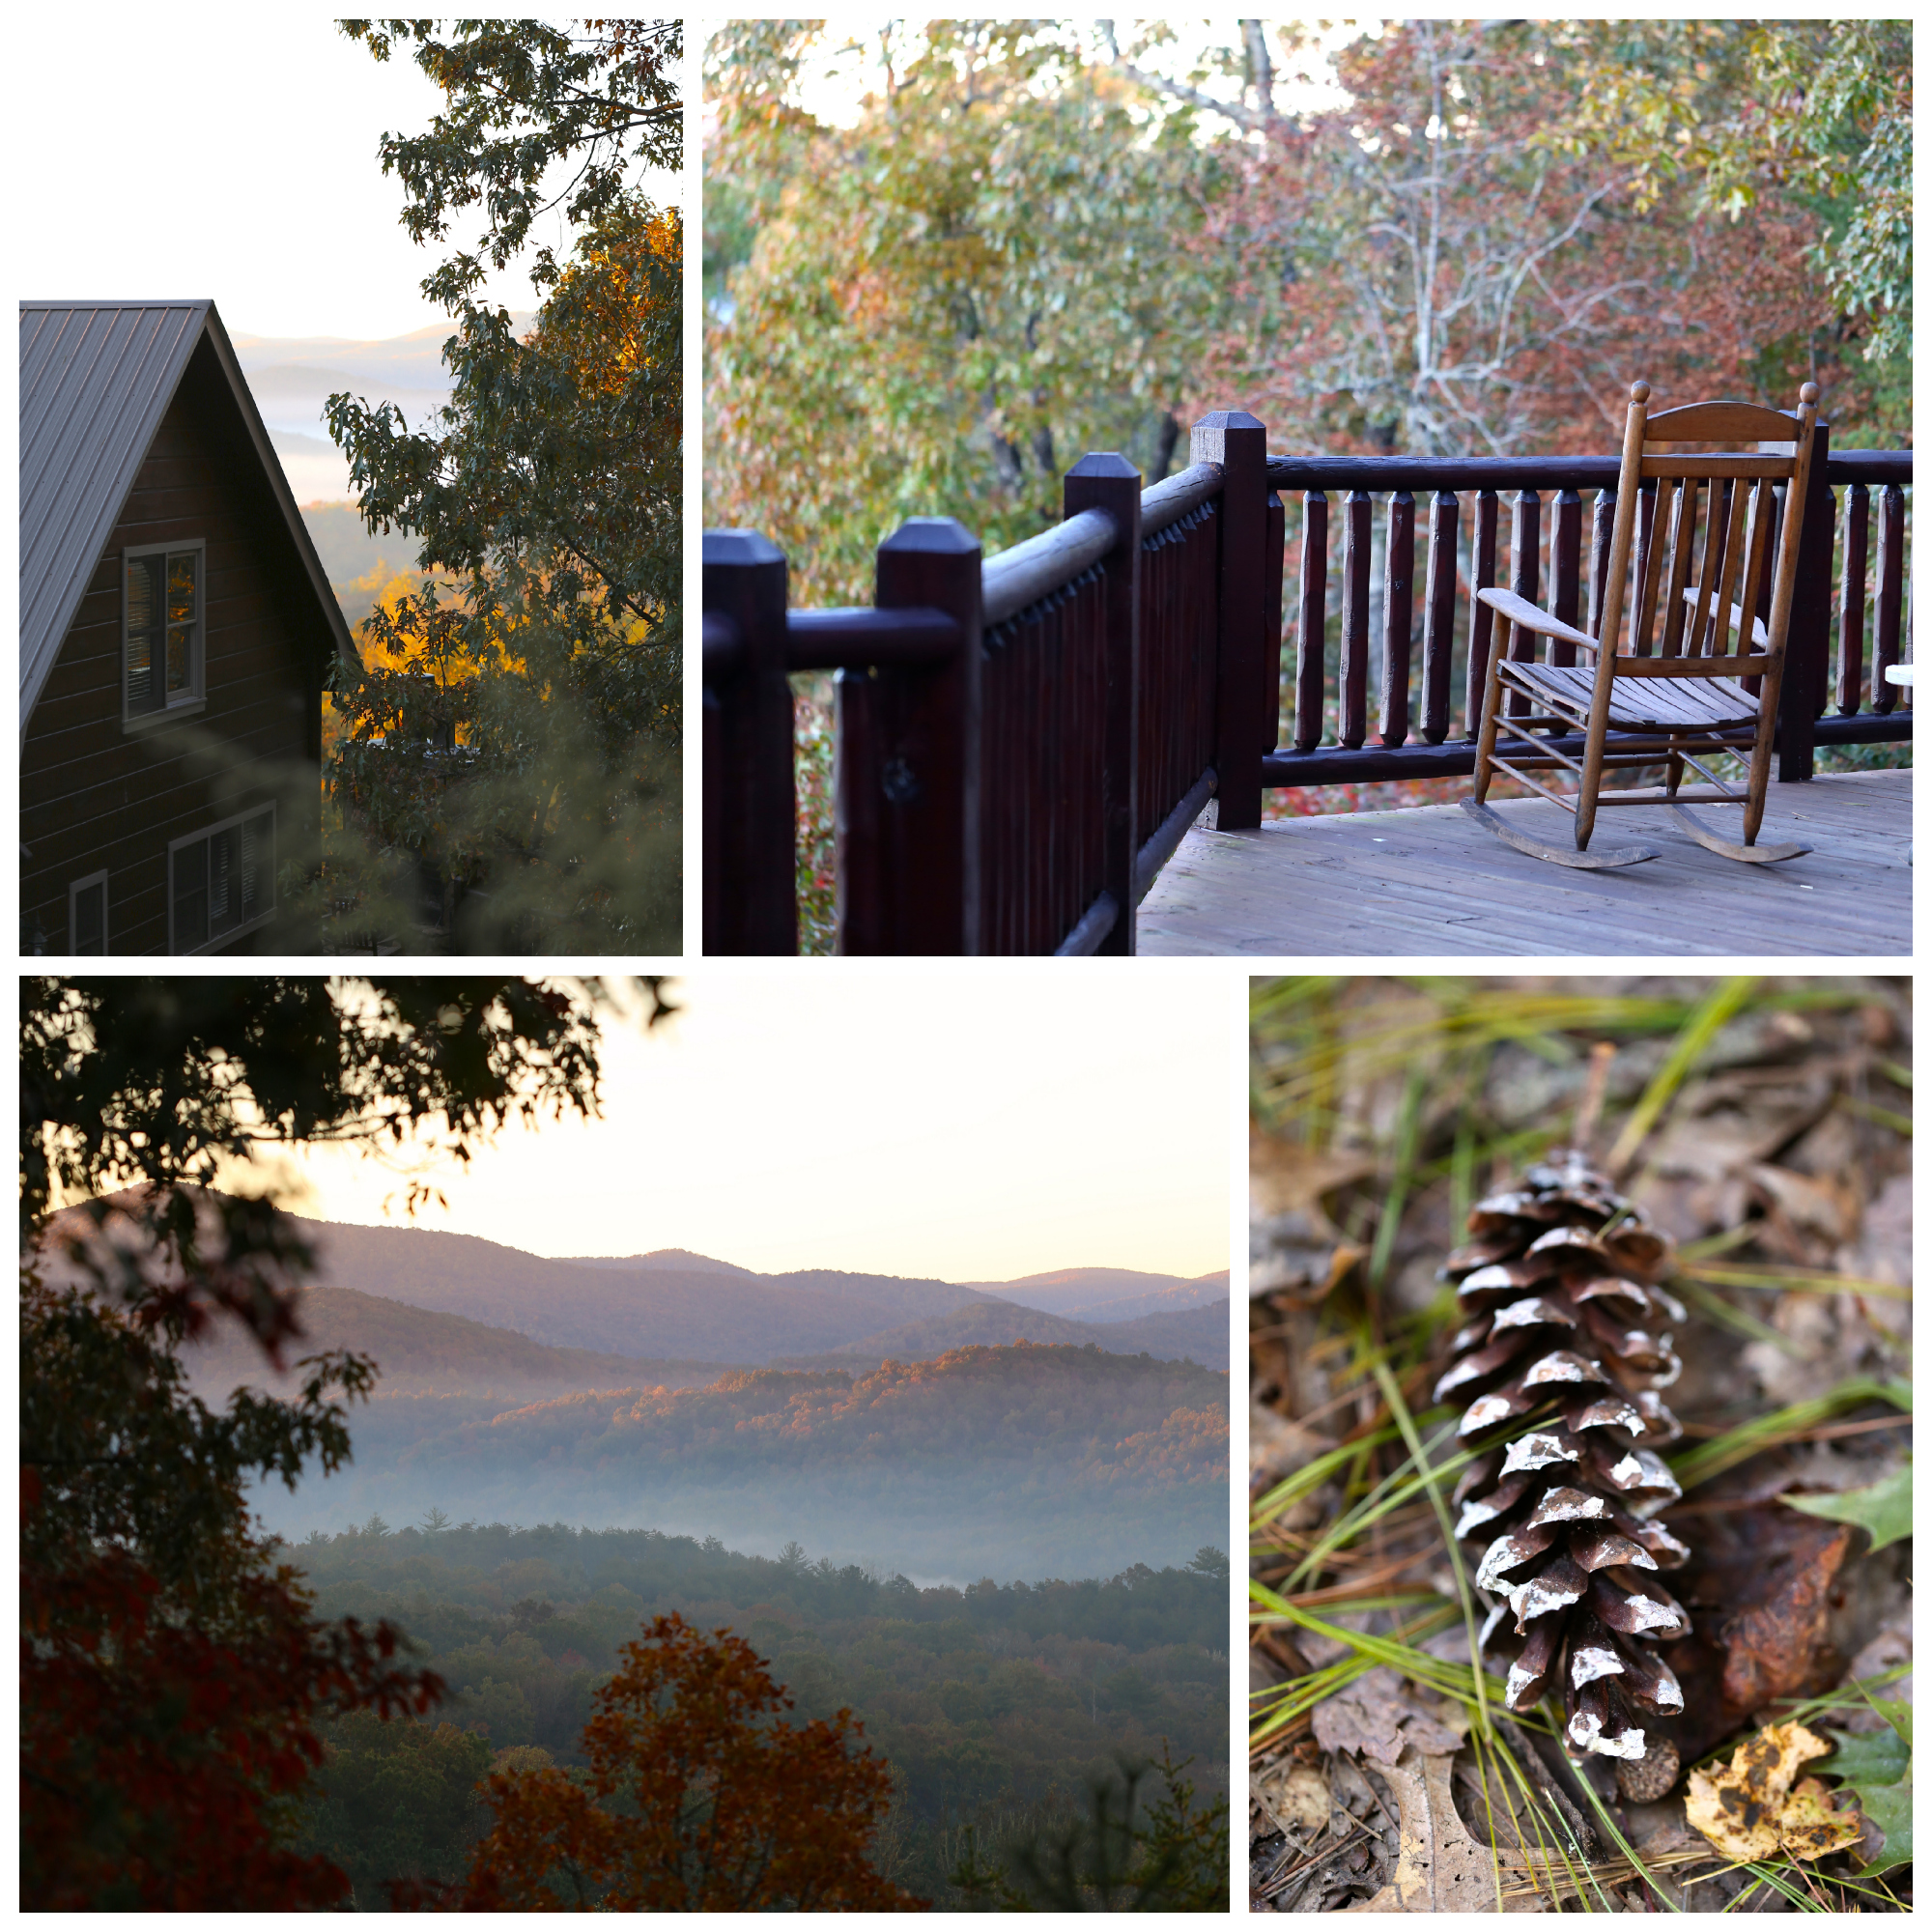 autumn morning at log cabin in mountains (Uninvented Colors Photography)